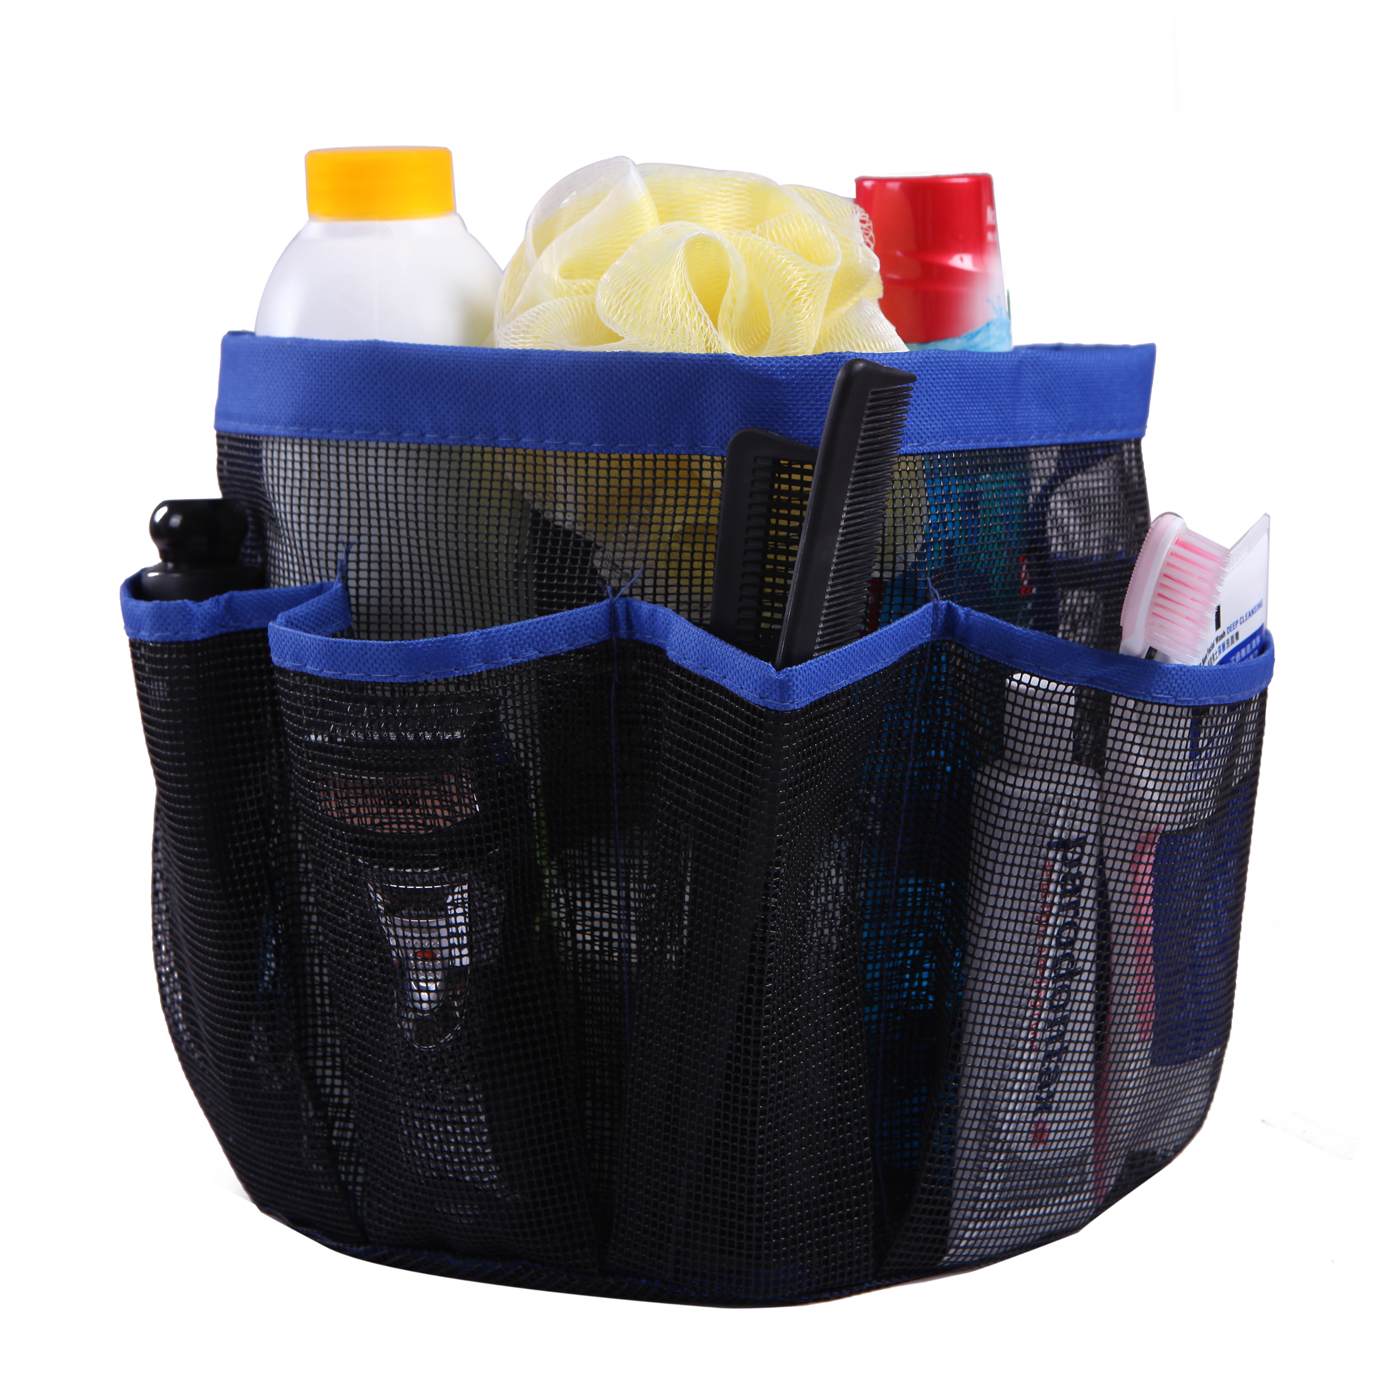 Hde Shower Caddy Mesh Bag College Dorm Bathroom Carry Tote